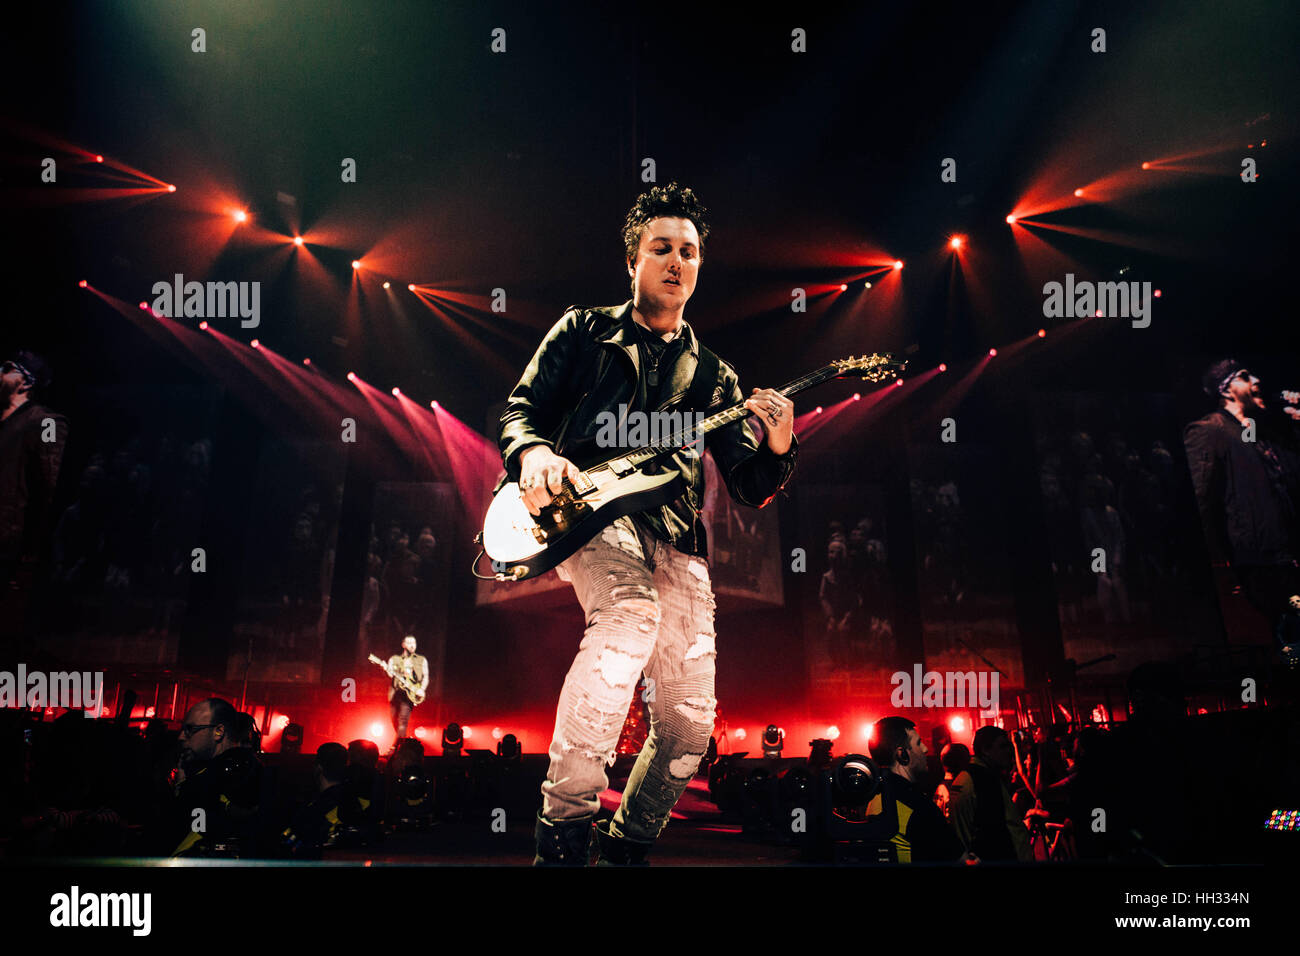 synyster gates stock photos synyster gates stock images alamy